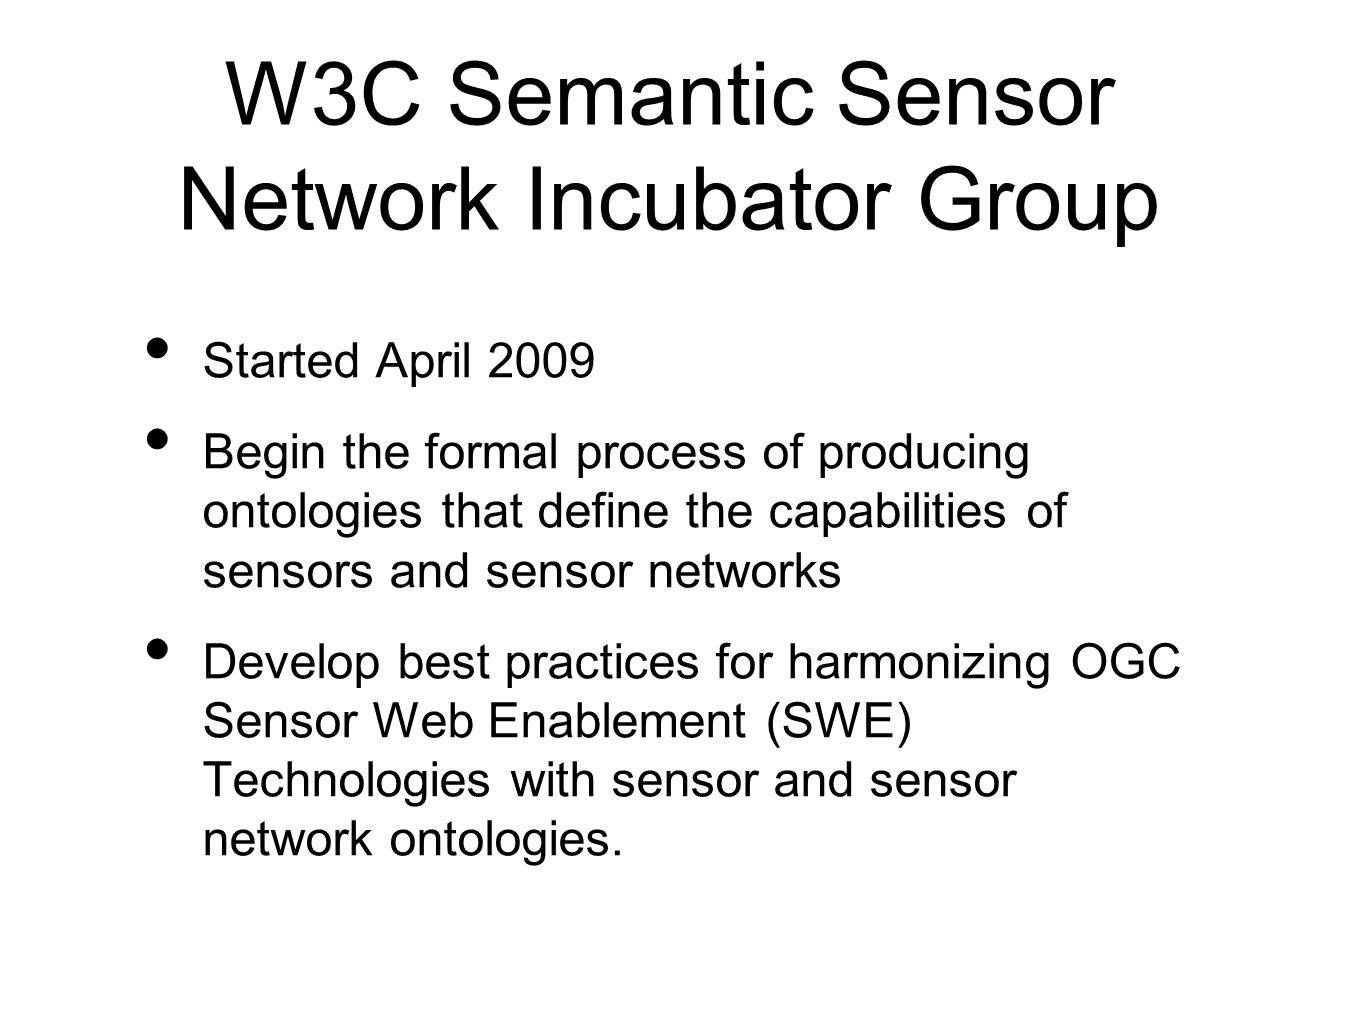 W3C Semantic Sensor Network Incubator Group Started April 2009 Begin the formal process of producing ontologies that define the capabilities of sensors and sensor networks Develop best practices for harmonizing OGC Sensor Web Enablement (SWE) Technologies with sensor and sensor network ontologies.